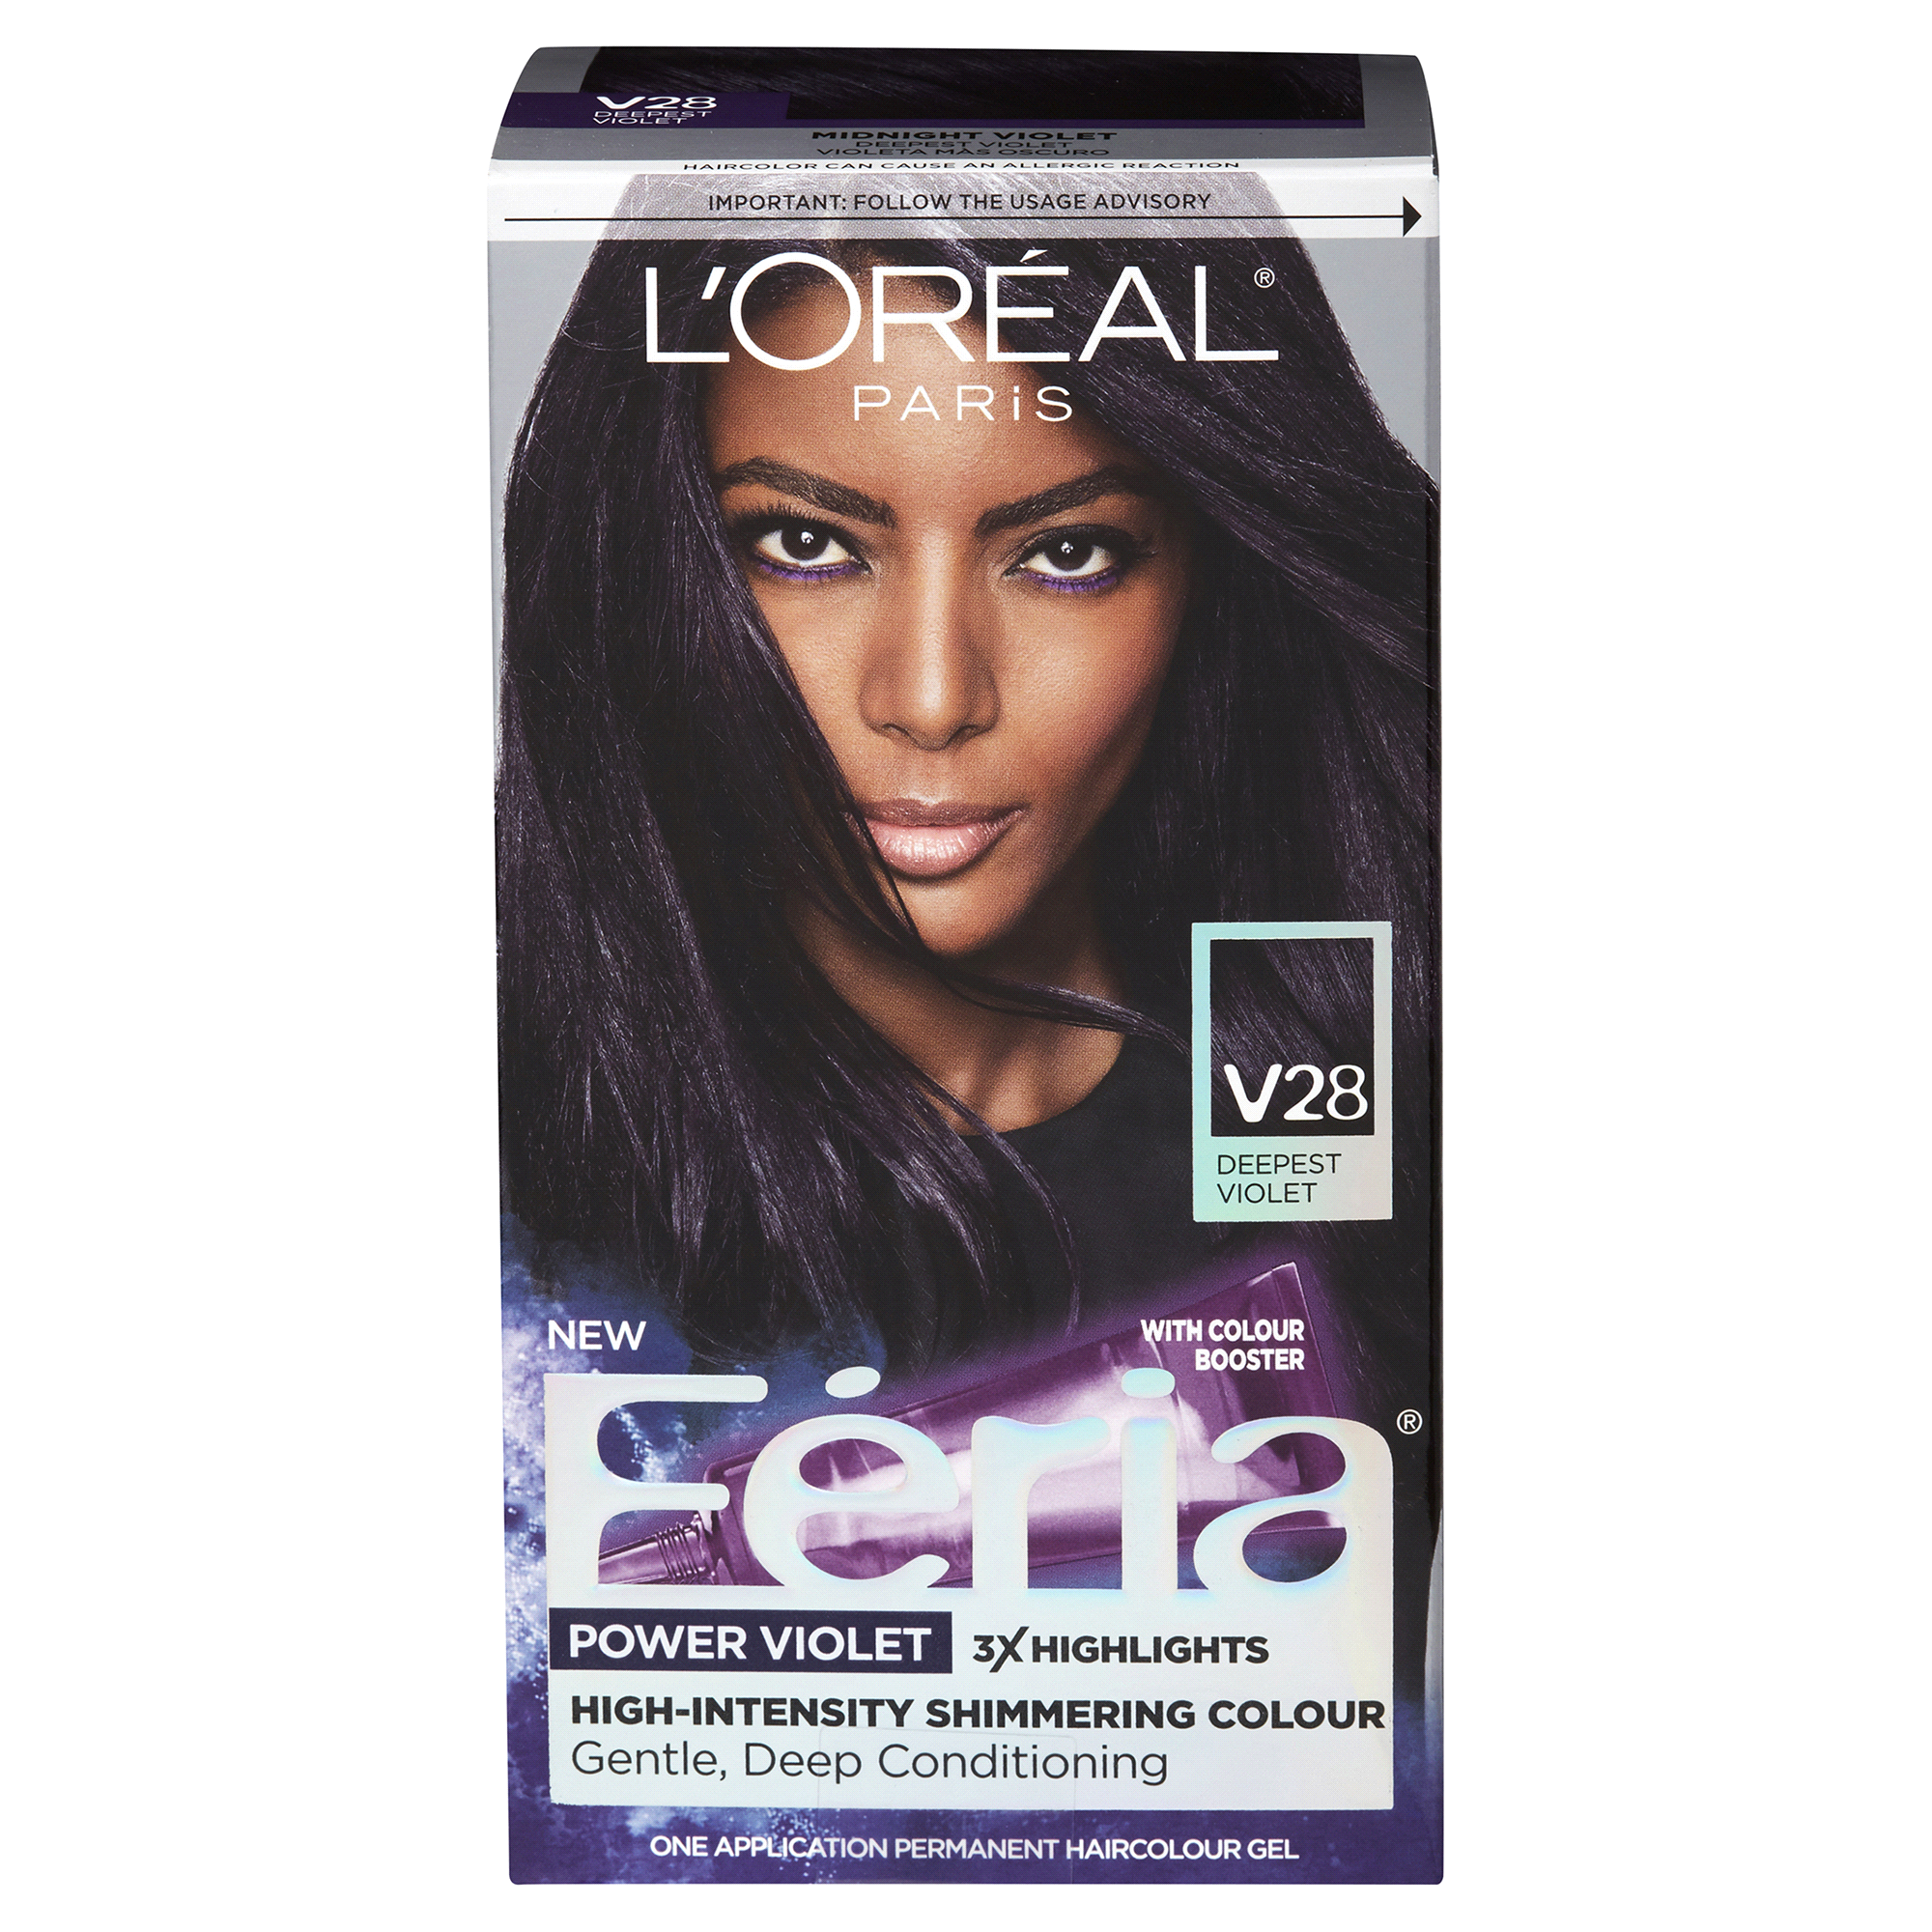 Loreal Paris Feria Hair Color Gel Deepest Violet V28 Meijer